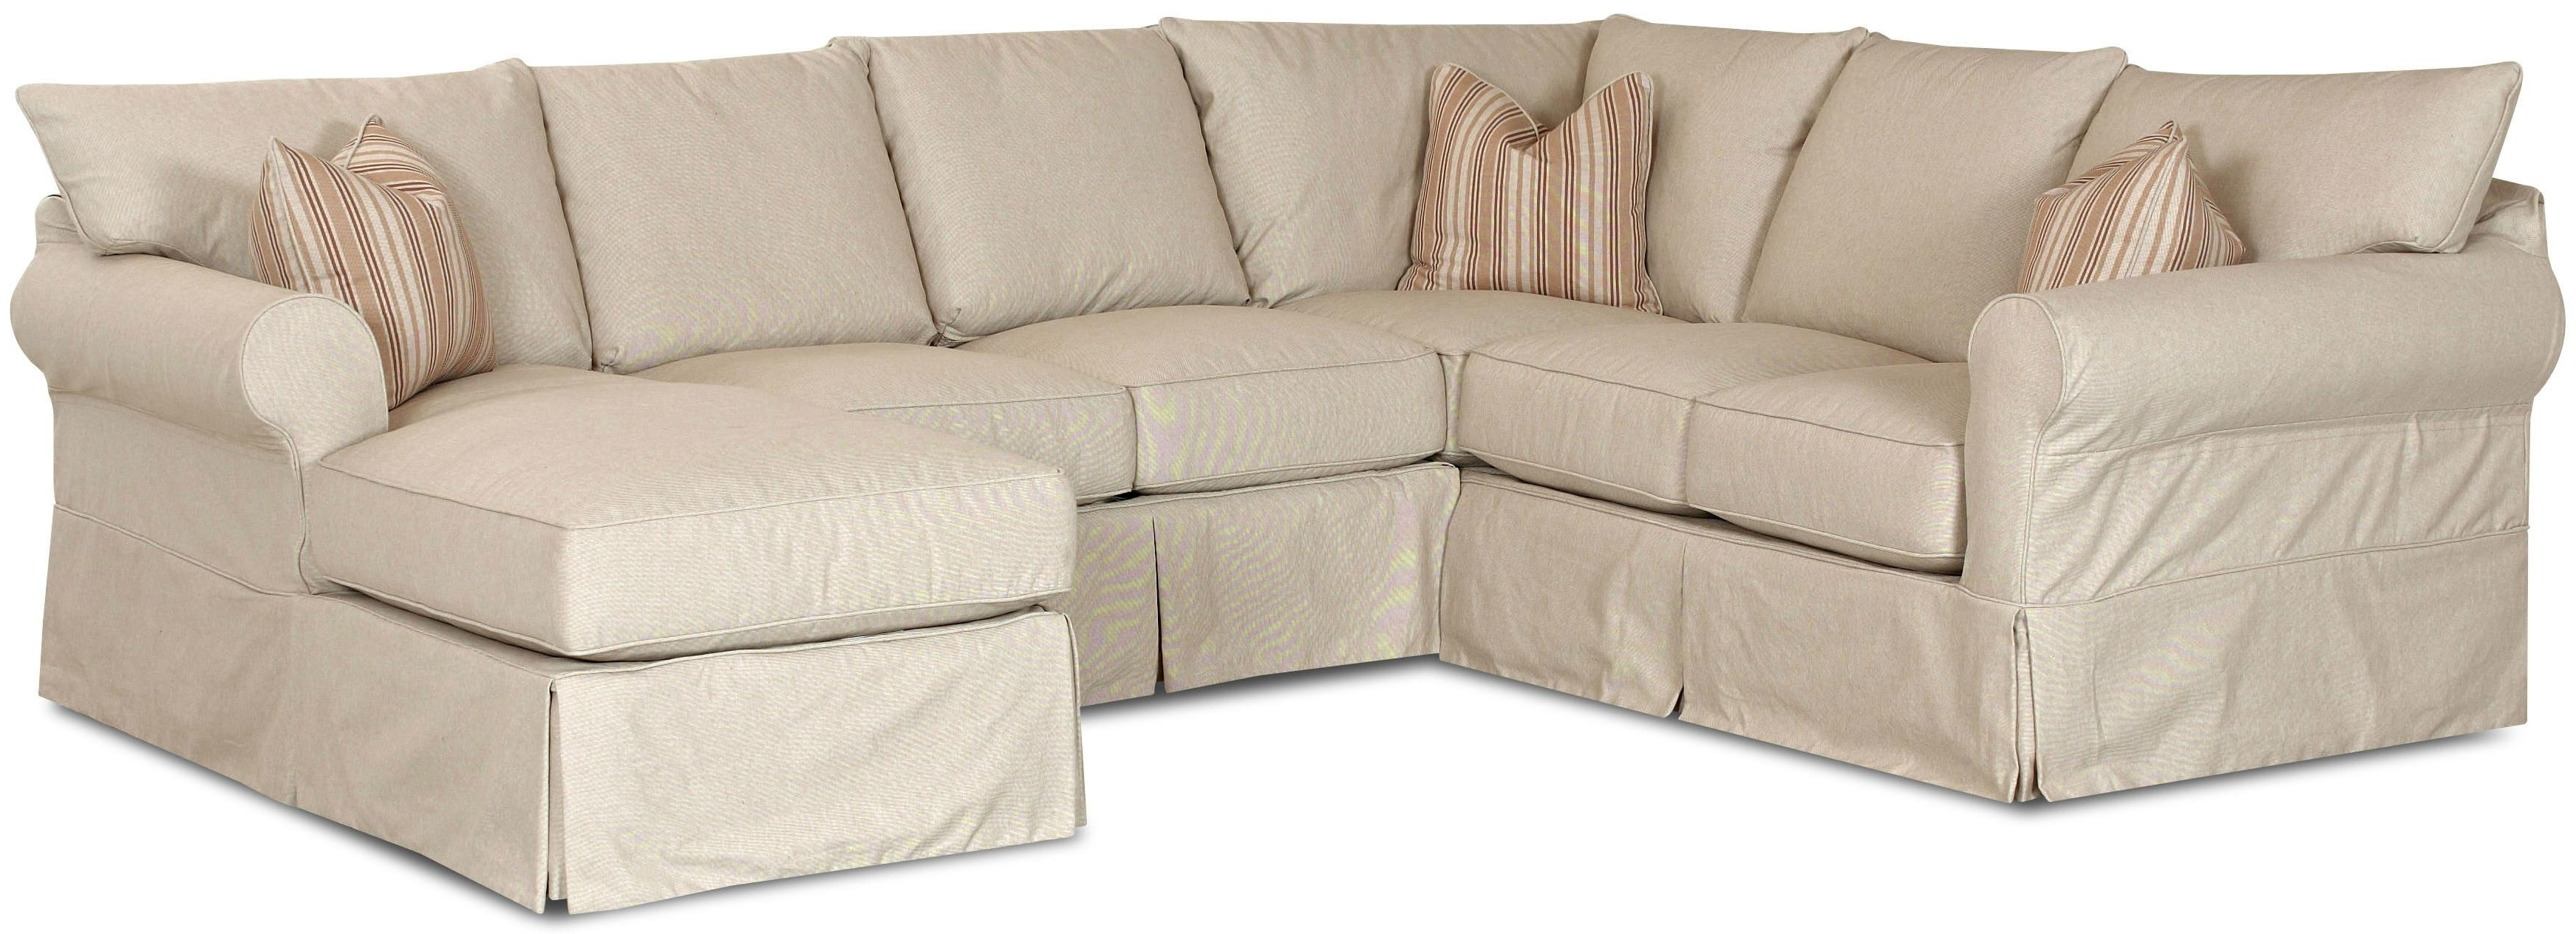 Most Current Target Sectional Sofas Pertaining To Furniture: Ivory Couch Slipcovers Target For Living Room Furniture (View 8 of 15)